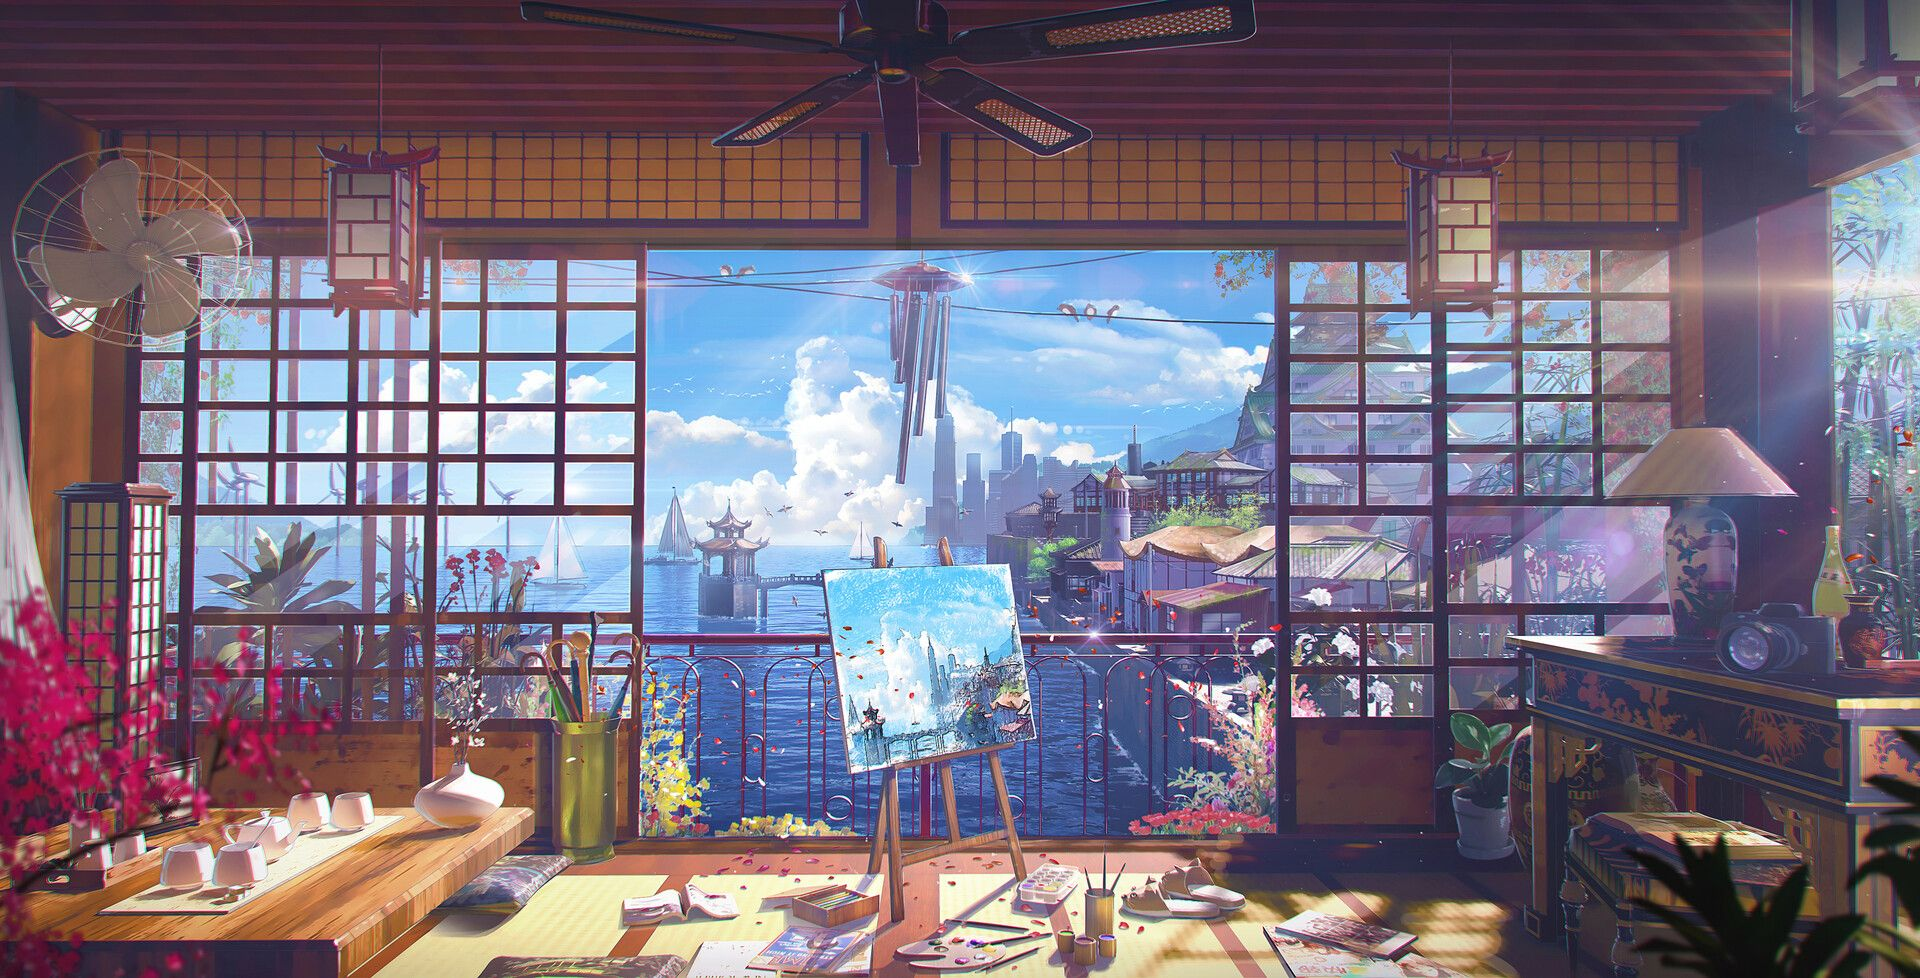 A Languid Afternoon By Taehoon Kanghello I M Showing You A Comfortable Little House With A View Of The O Anime Scenery Wallpaper Anime Background Anime Scenery